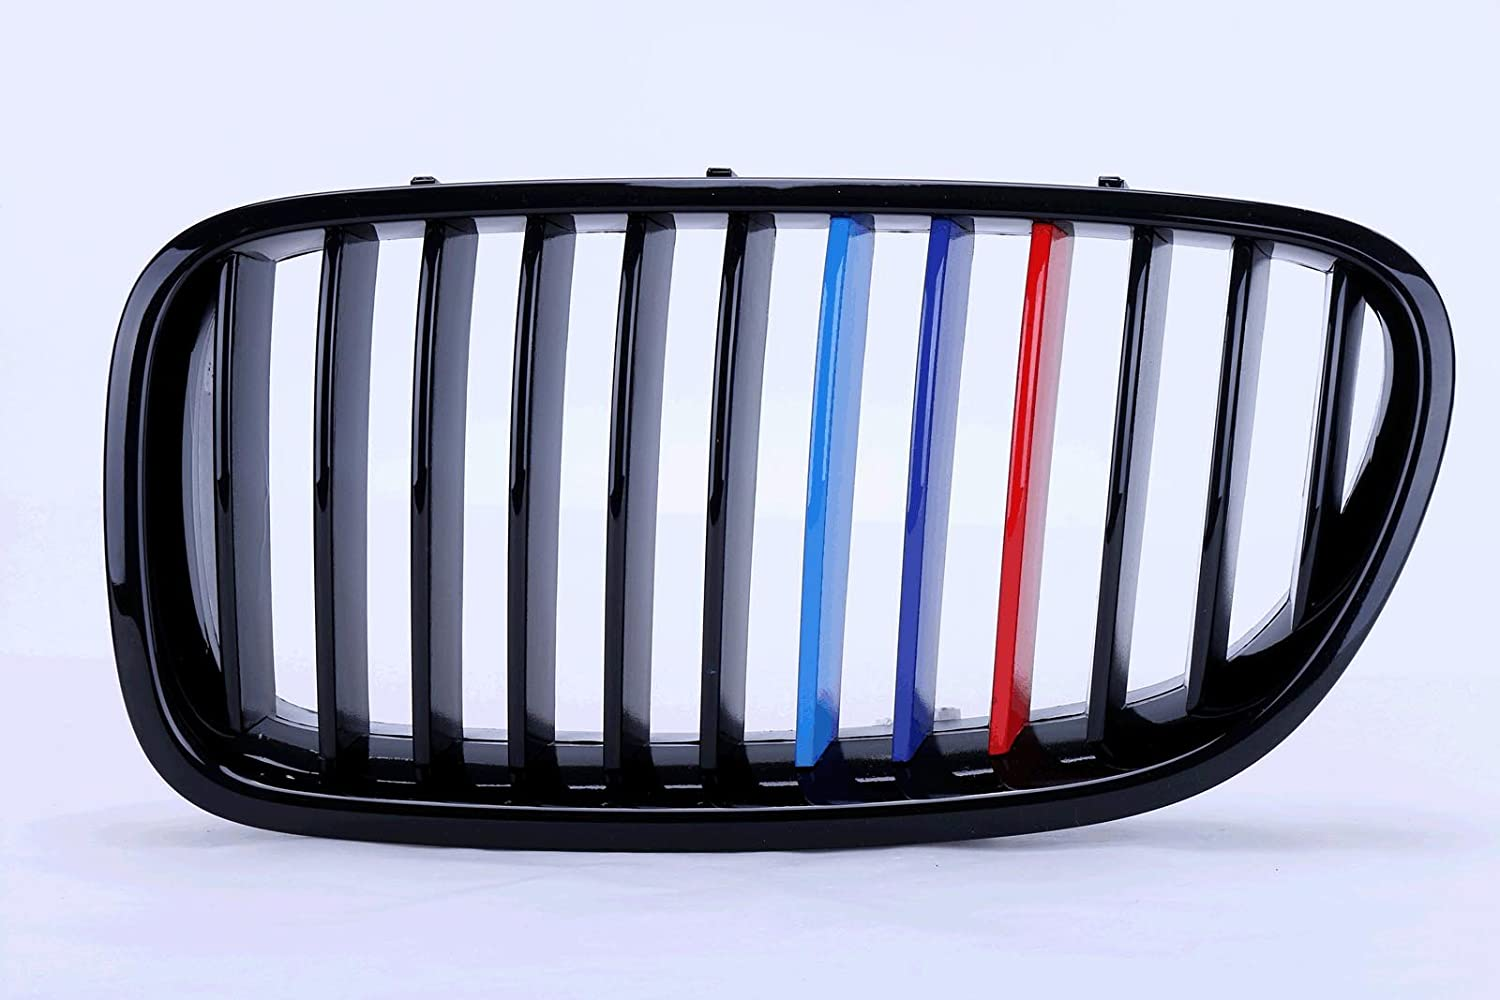 F10 F18 Grill M-Color Gloss Black Front Hood Kidney ABS Plastic Grille Grill For BMW 5 Series BMW F10 F18 2 Doors 2010-2014MW E92 E93 2 Door 2010-2014